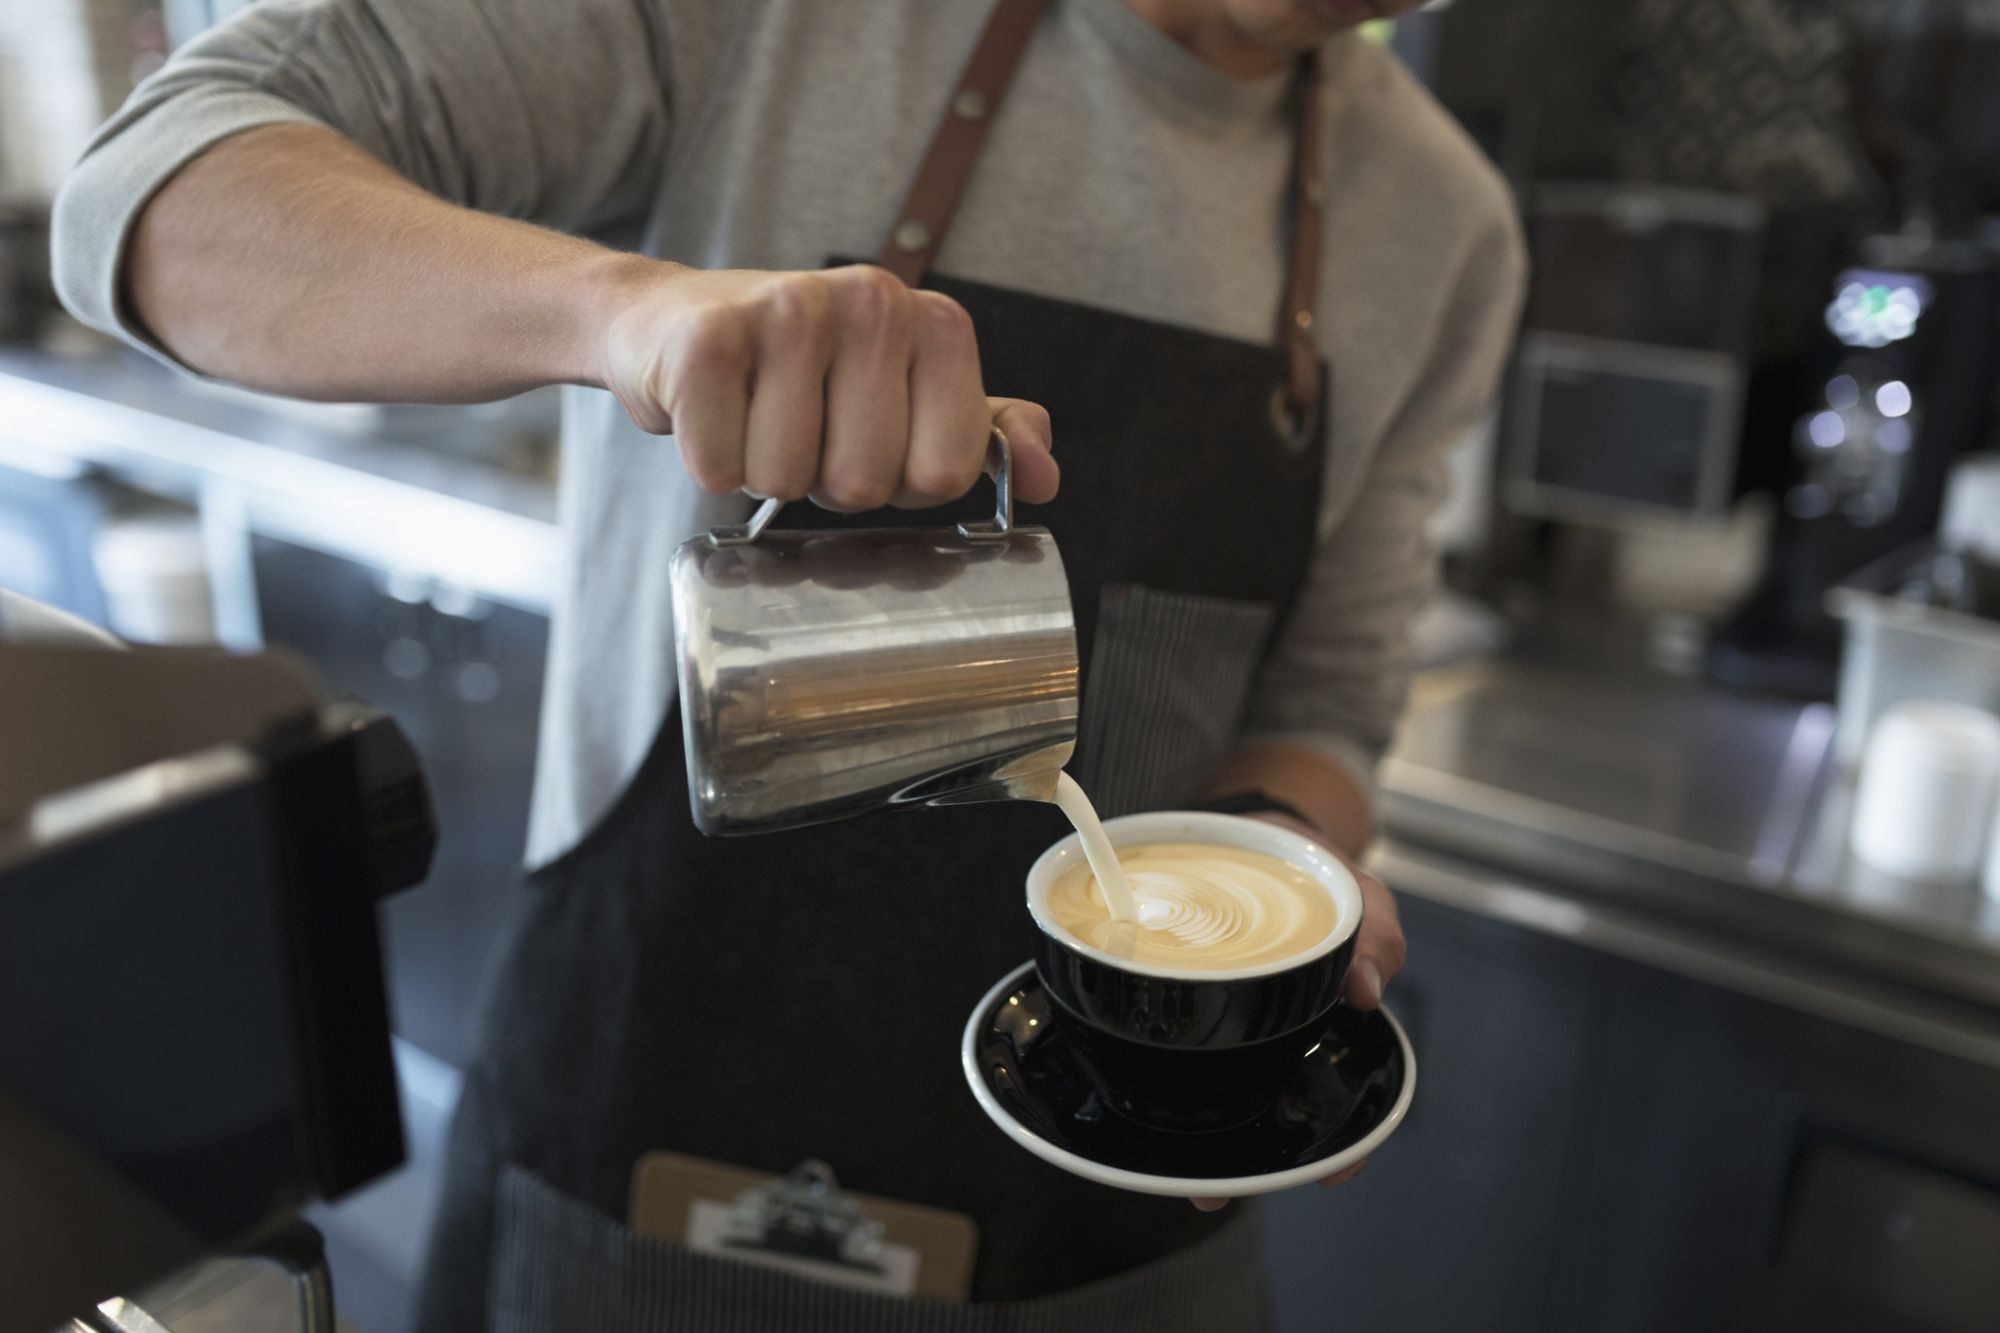 How Does That Independent Coffee Shop Survive?